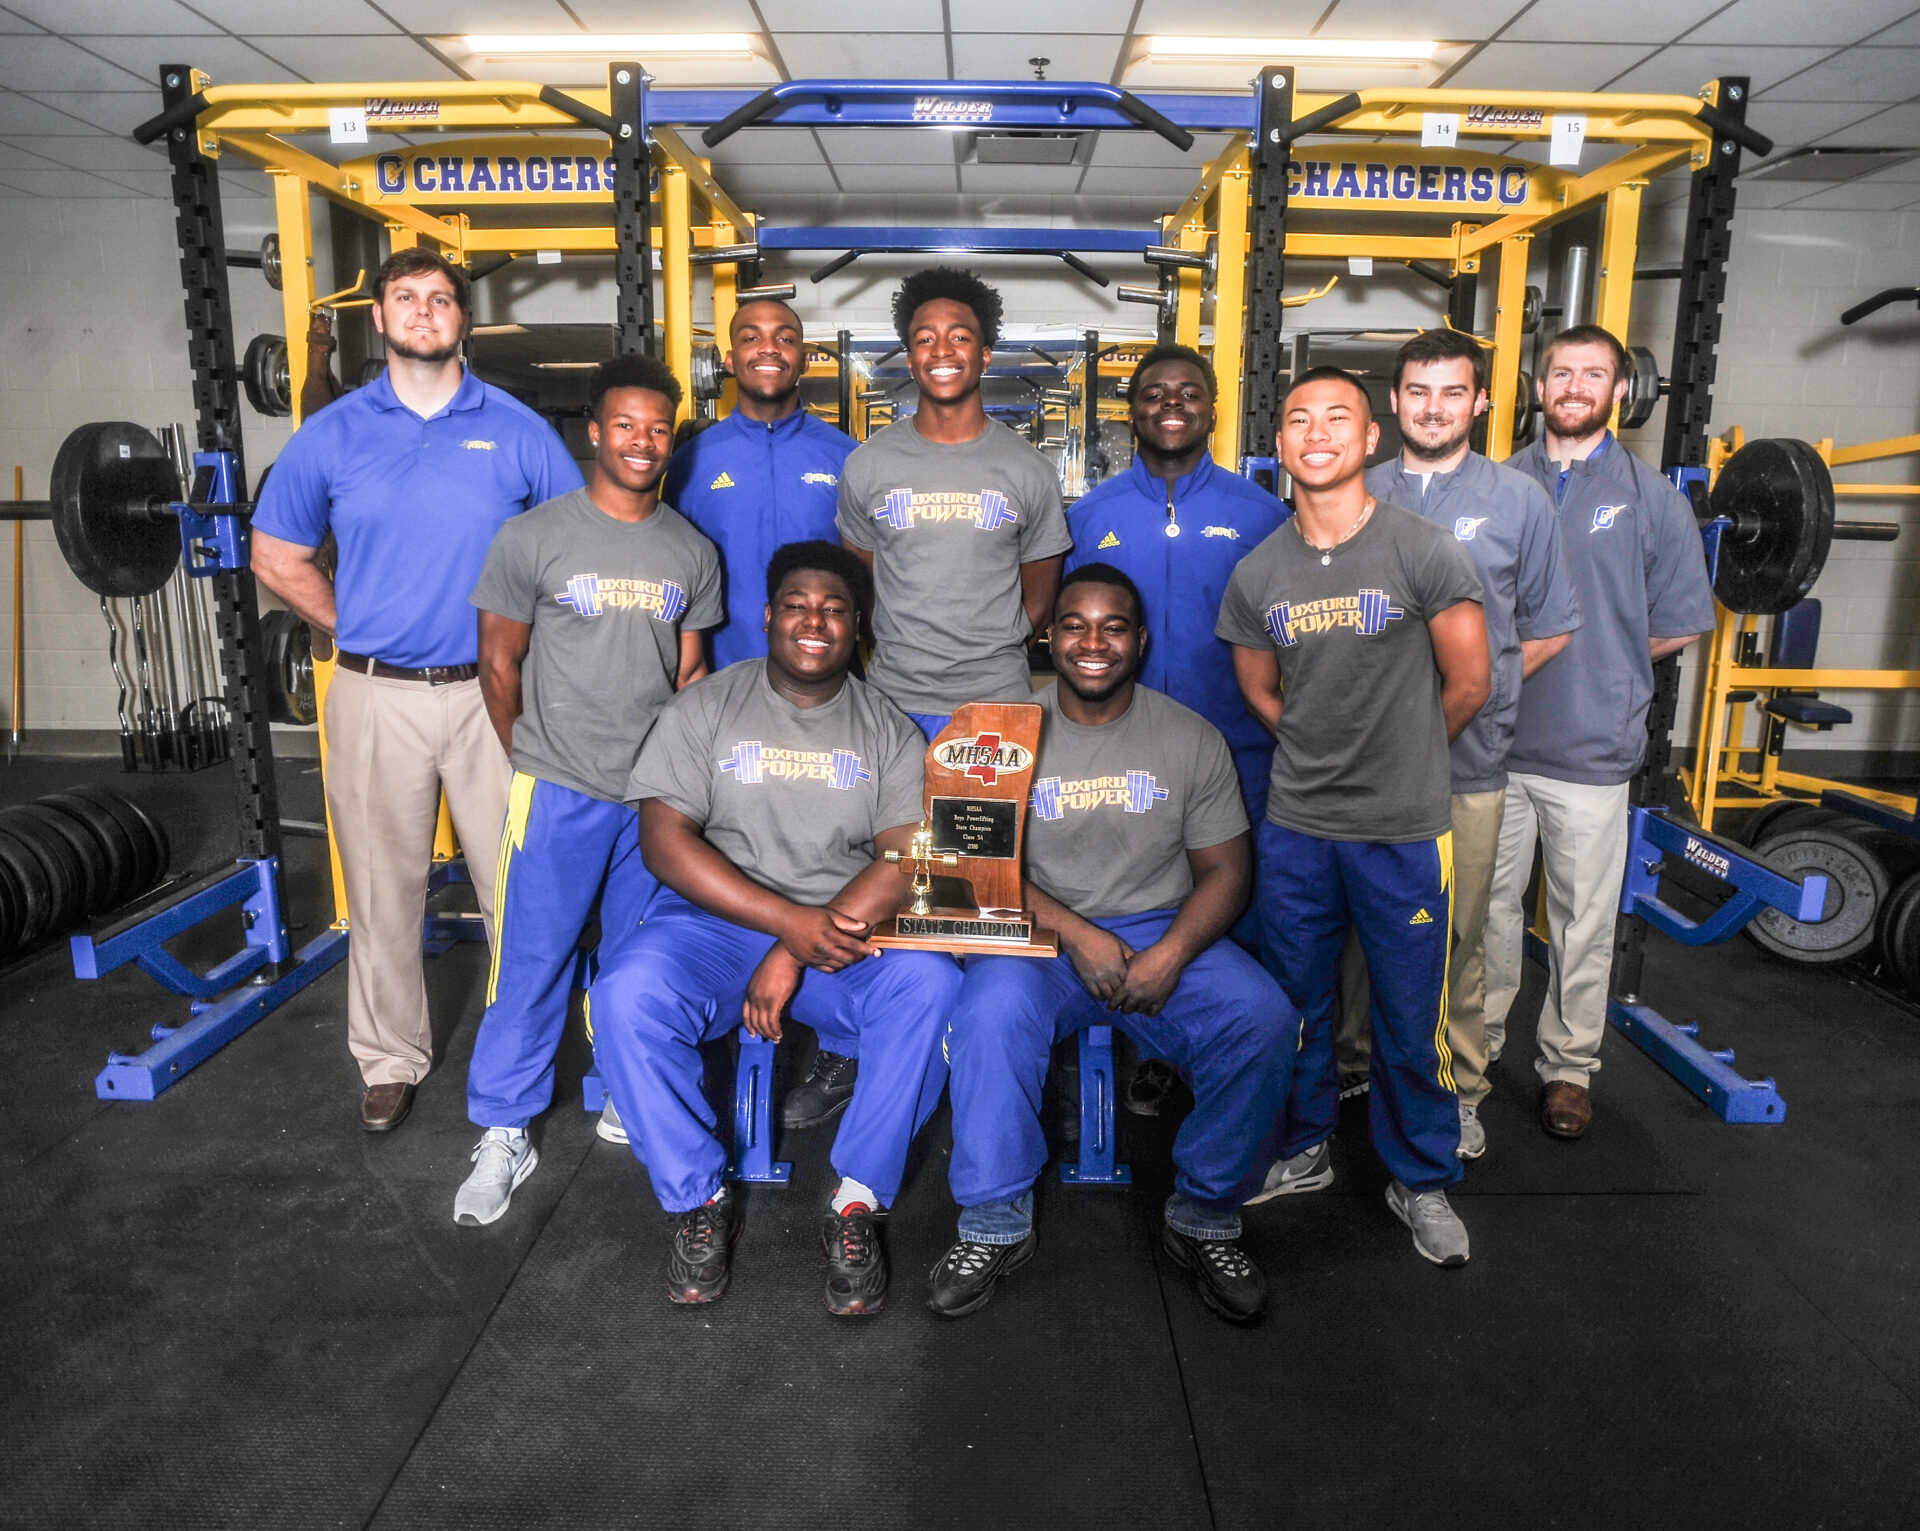 The Oxford High powerlifting team, in Oxford, Miss. on Monday, April 16, 2016, won the school's fourth consecutive powerlifting championship on Saturday, April 16, 2016 in Jackson, Miss. The team is, sitting from left, Jackquez Neilson and Brandon Hill, and standing, from left, coach Jason Russell, Tias Hilliard, Kent Hickinbottom, DQ Thomas, Nick Sisk, Alex Le, and coaches Chris Cutcliffe and Matt McCrory.